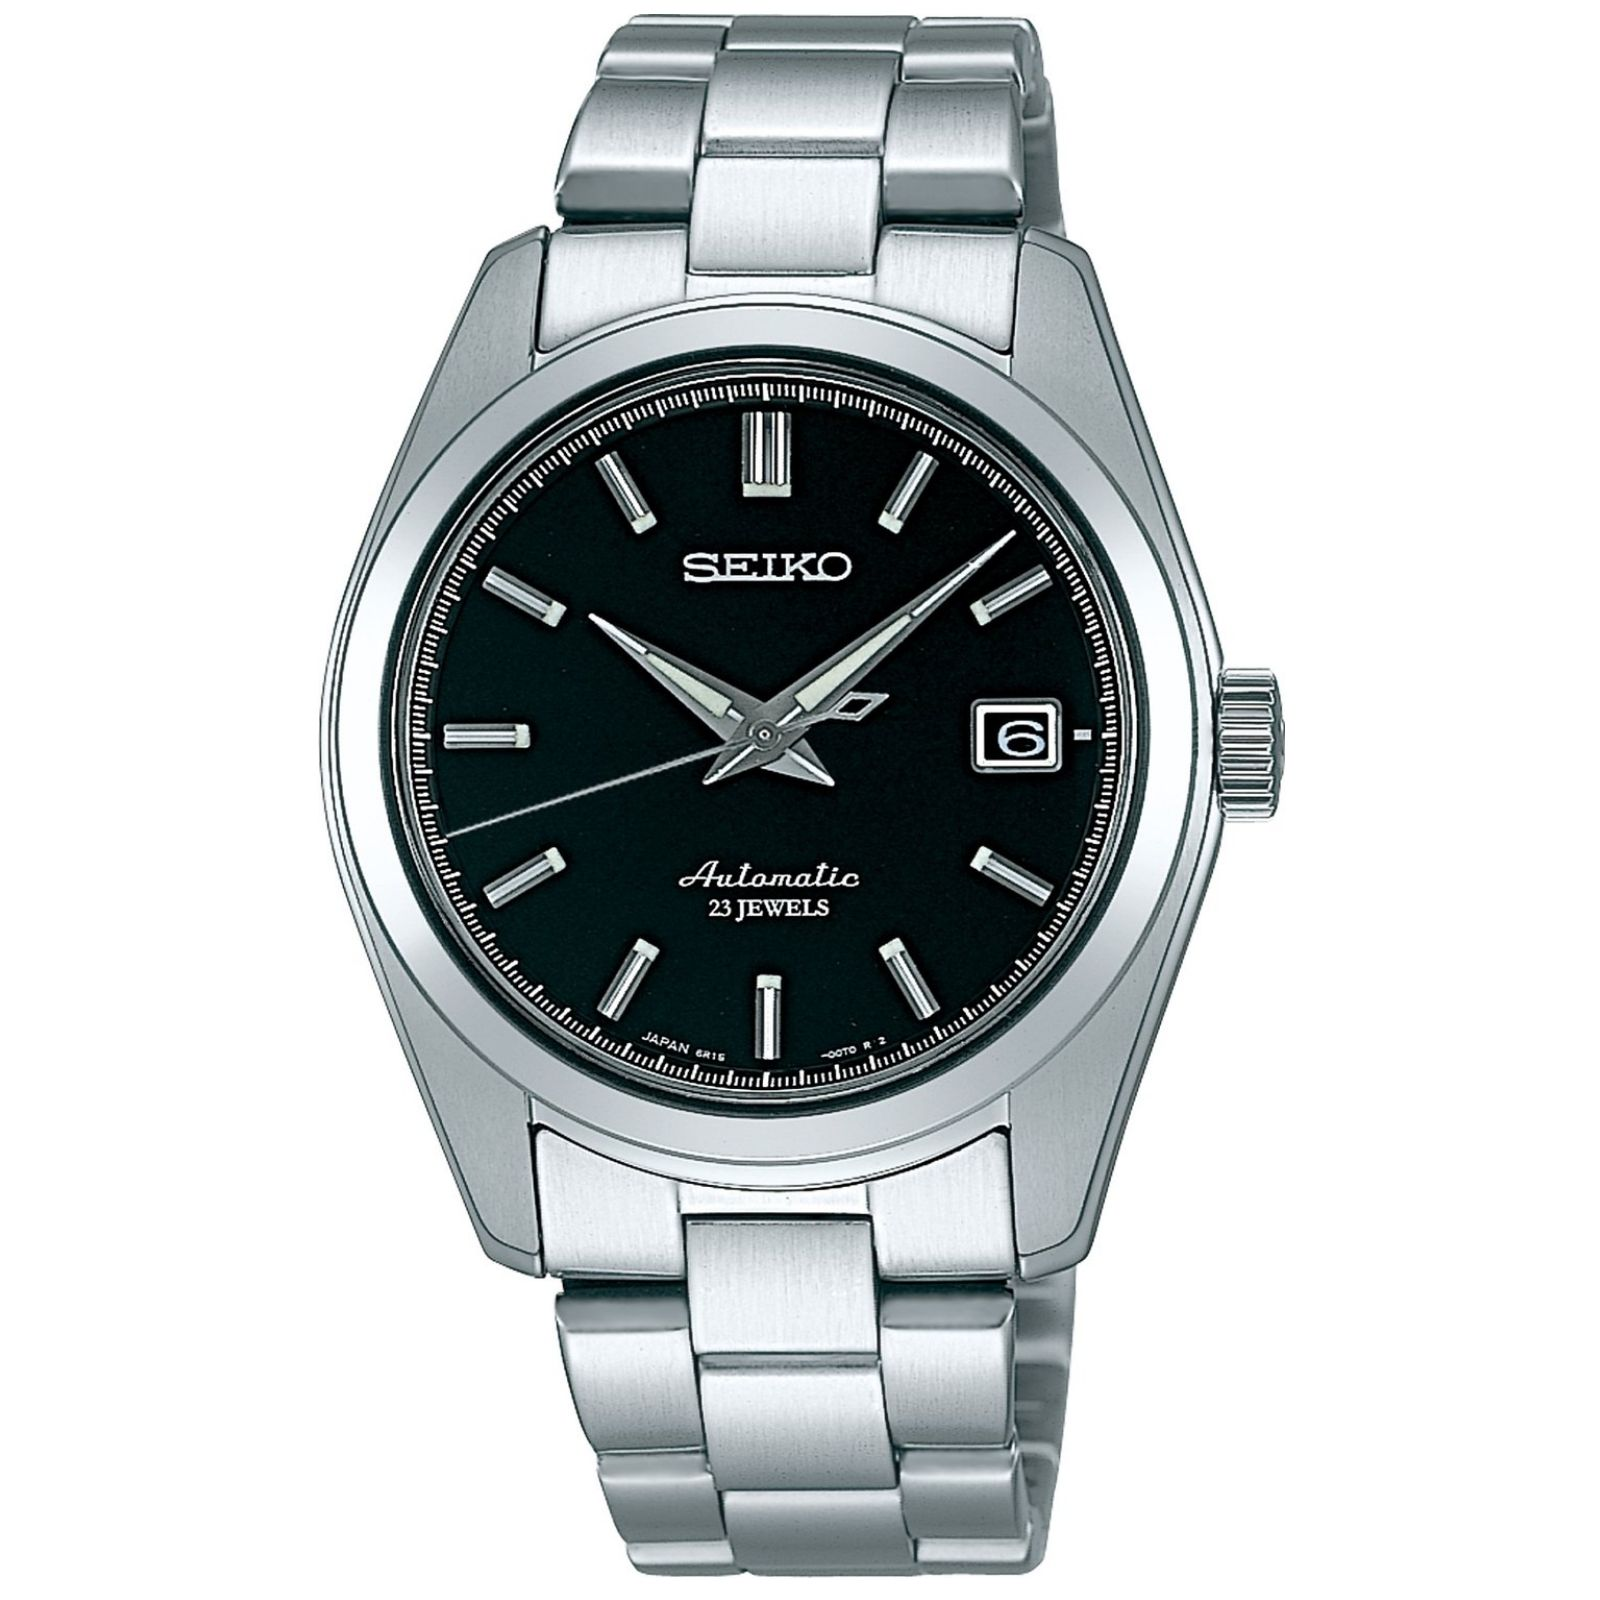 SEIKO SARB033 Mechanical Automatic Stainless Steel